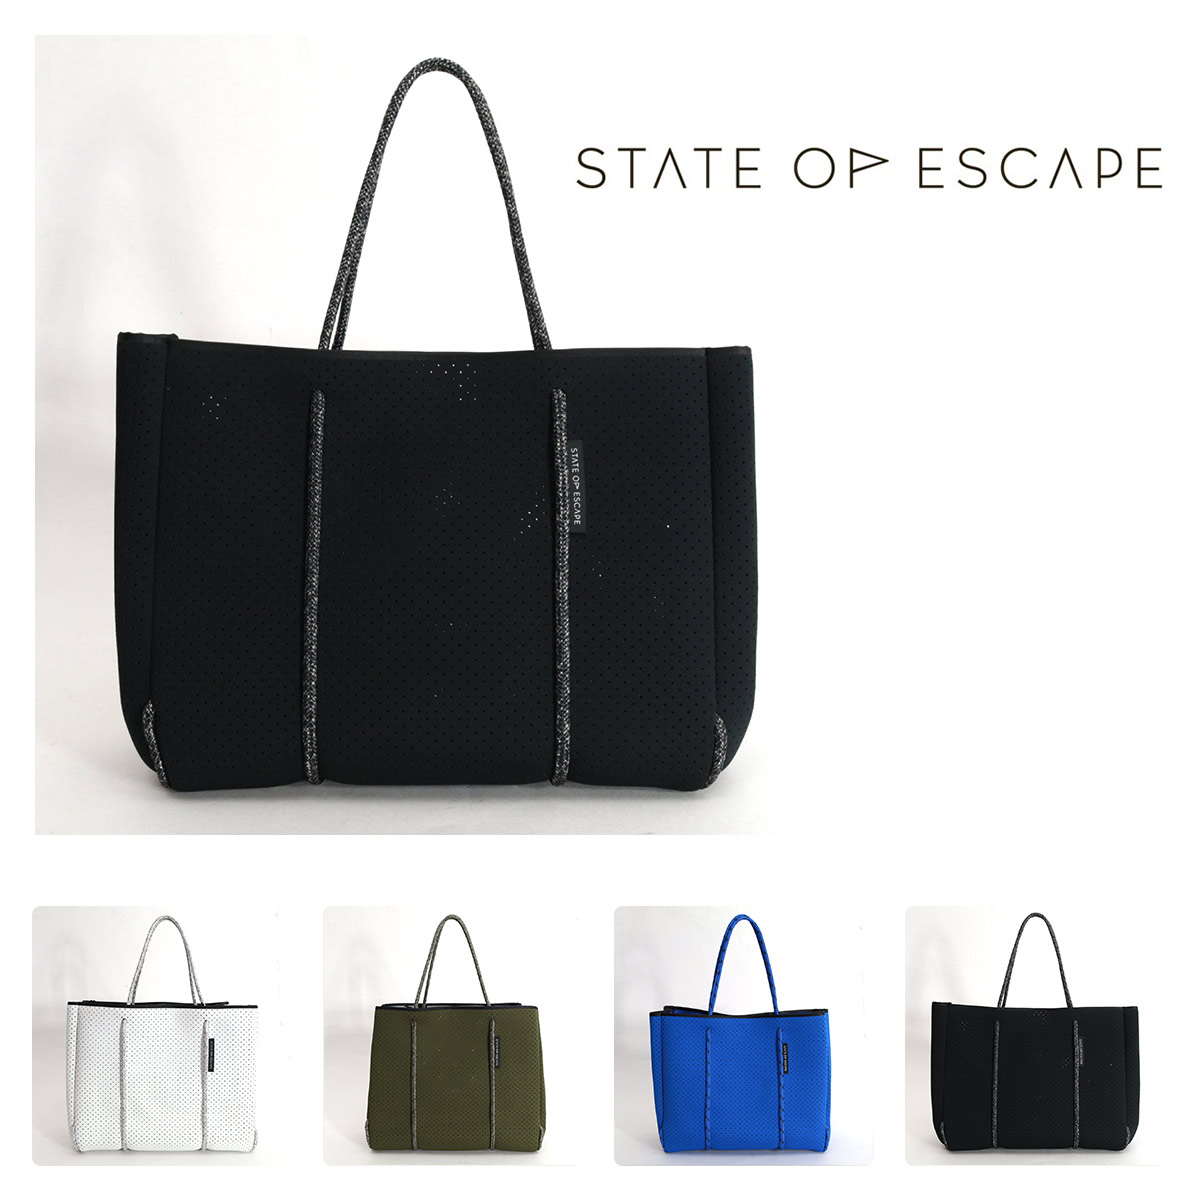 STATE OF ESCAPE Flying Solo トートバッグ